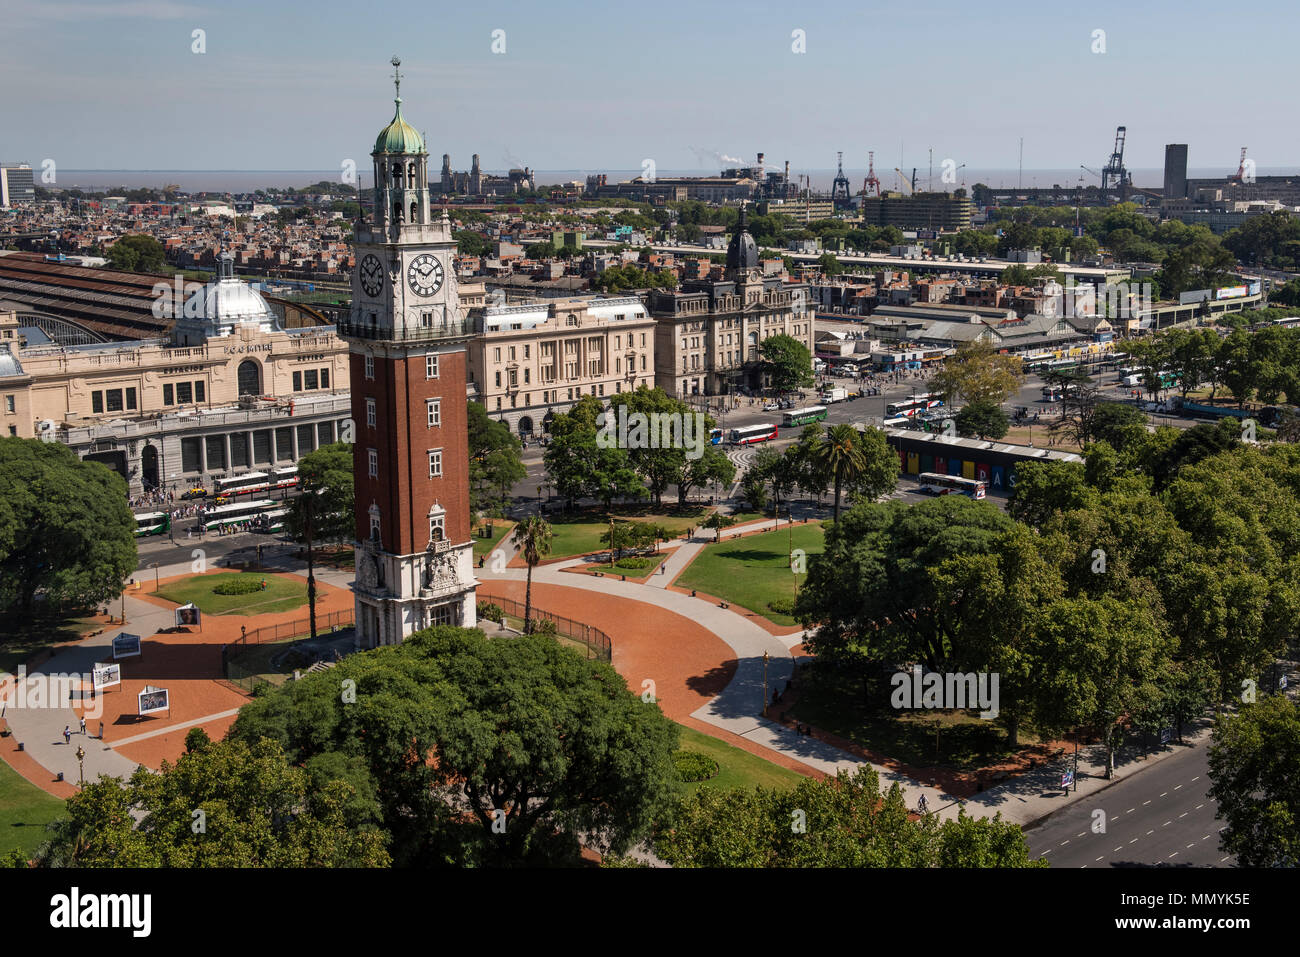 Argentina, Retiro, Buenos Aires, San Martin Square. Plaza Fuerza Aerea Argentina formerly Plaza Britanica. Overview of Tower Monument aka Torre Monume - Stock Image